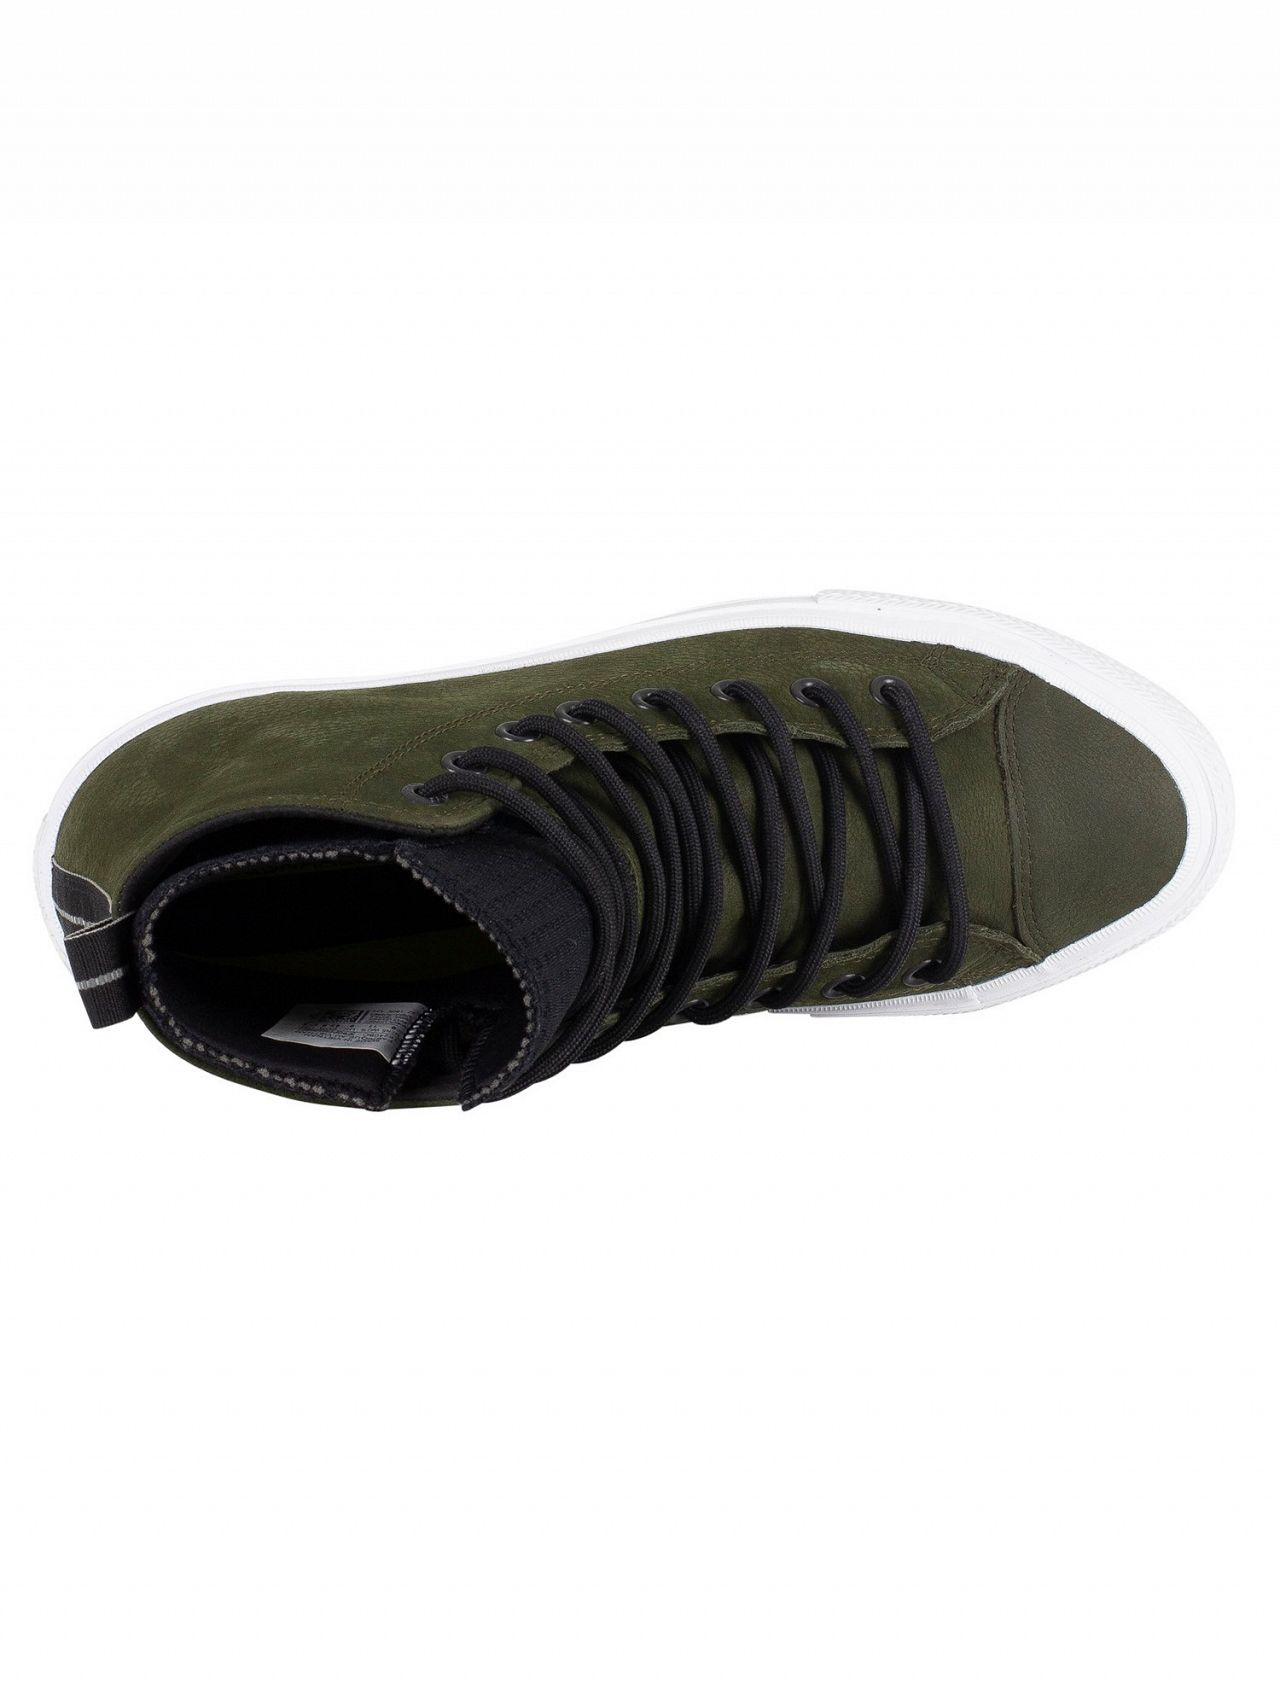 a79191f75bd4 Converse Utility Green Black White CT All Star Hi WP Leather Boots ...